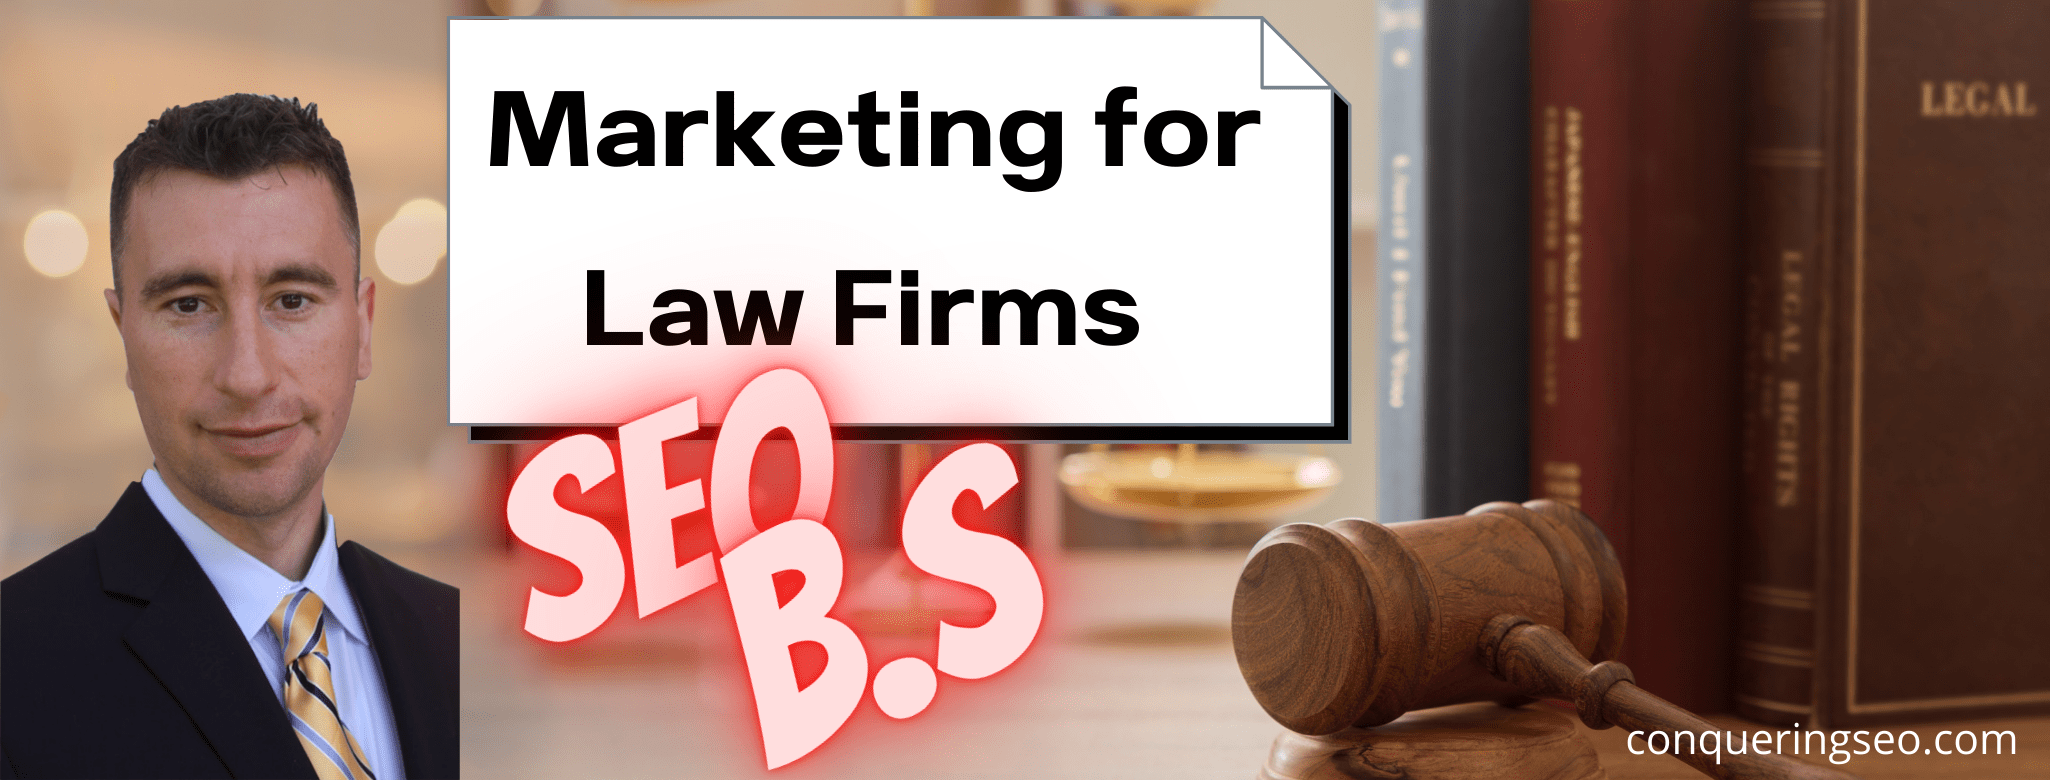 picture of the marketing for law firms banner